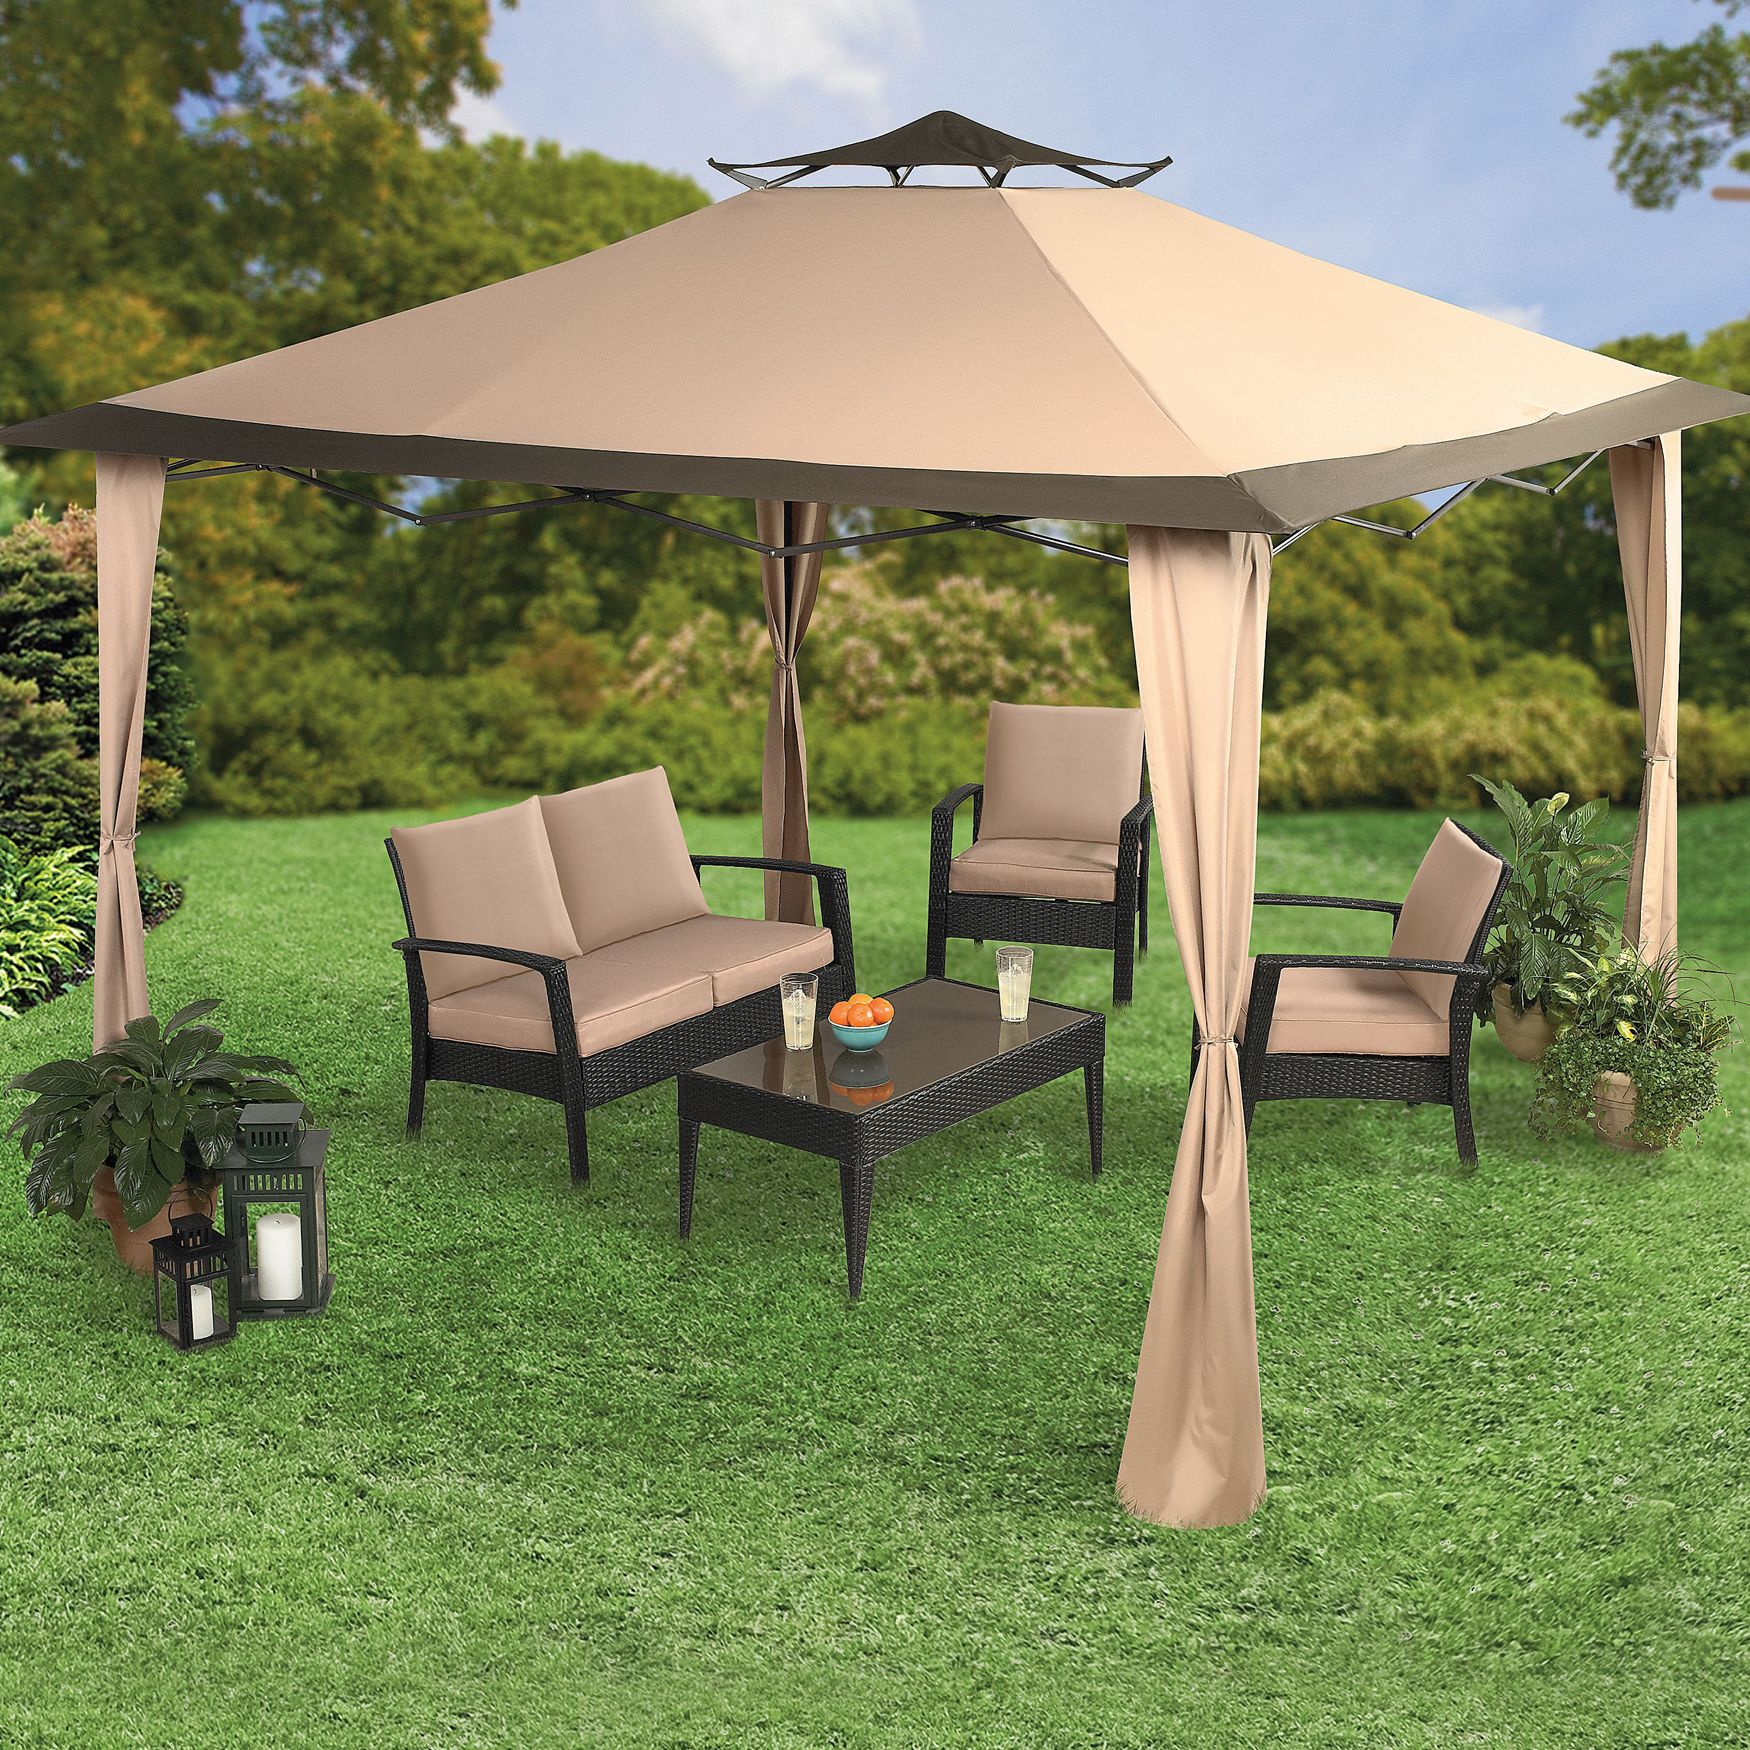 Oversized 10' Sq Instant Pop Gazebo Patio Furniture